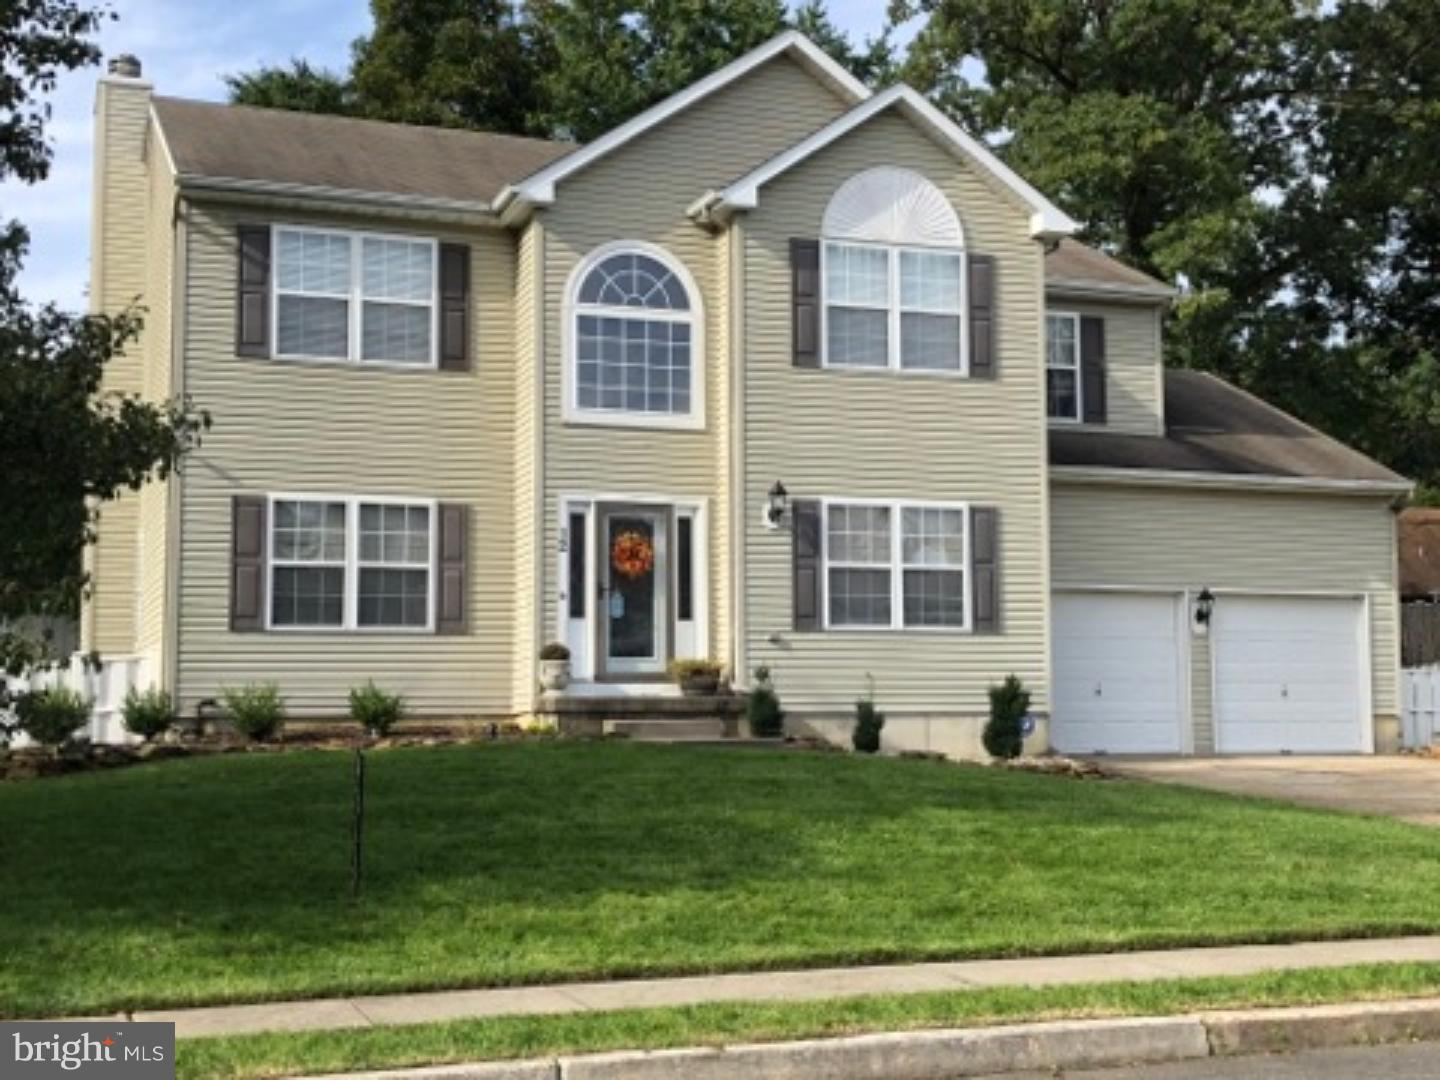 Single Family Home for Sale at 12 UNDERWOOD Court Burlington Township, New Jersey 08016 United States